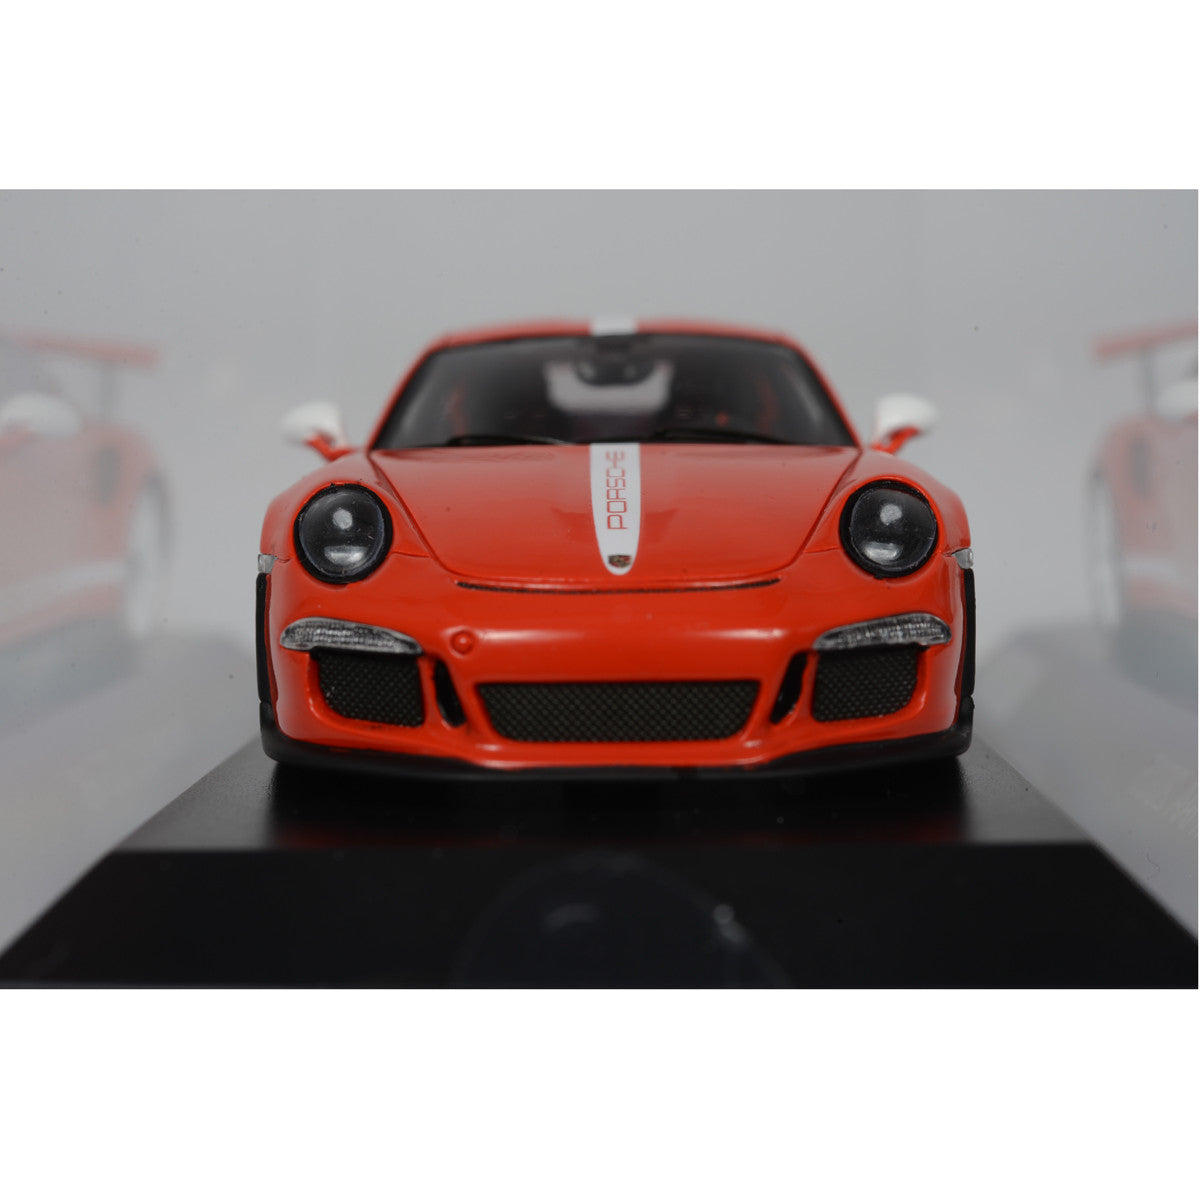 Model Cars - Porsche 911 (991) GT3 RS 1/43 Limited IAA Edition 2015 1 of 1,000